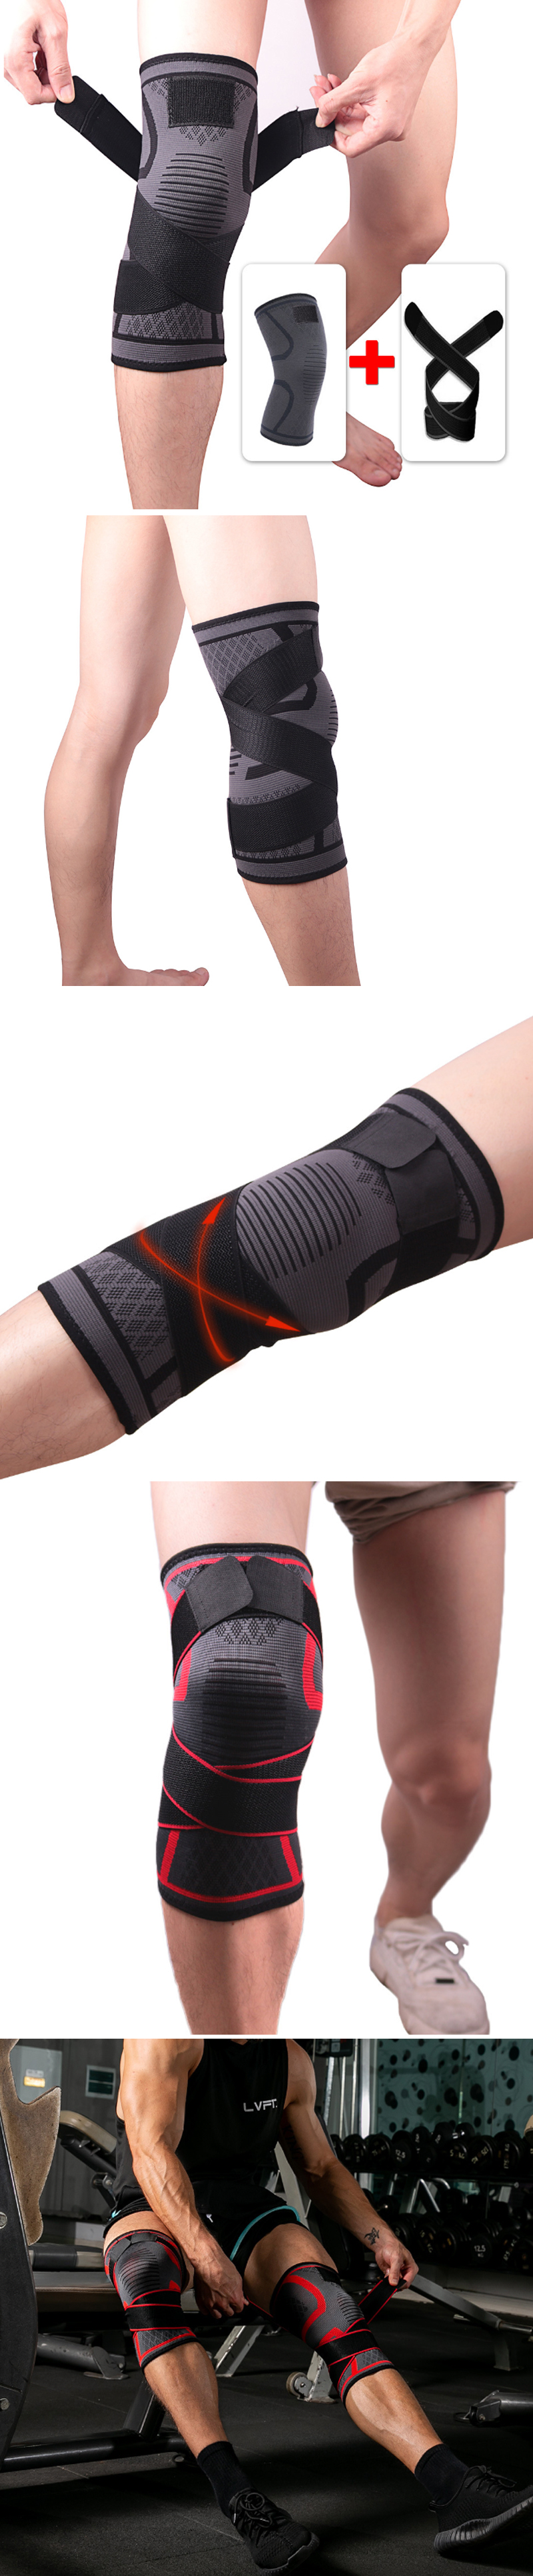 KALOAD 1 PC Knitting Knee Pad Fitness Exercise Running Cycling Elastic Knee Support Sports Knee Protective Gear